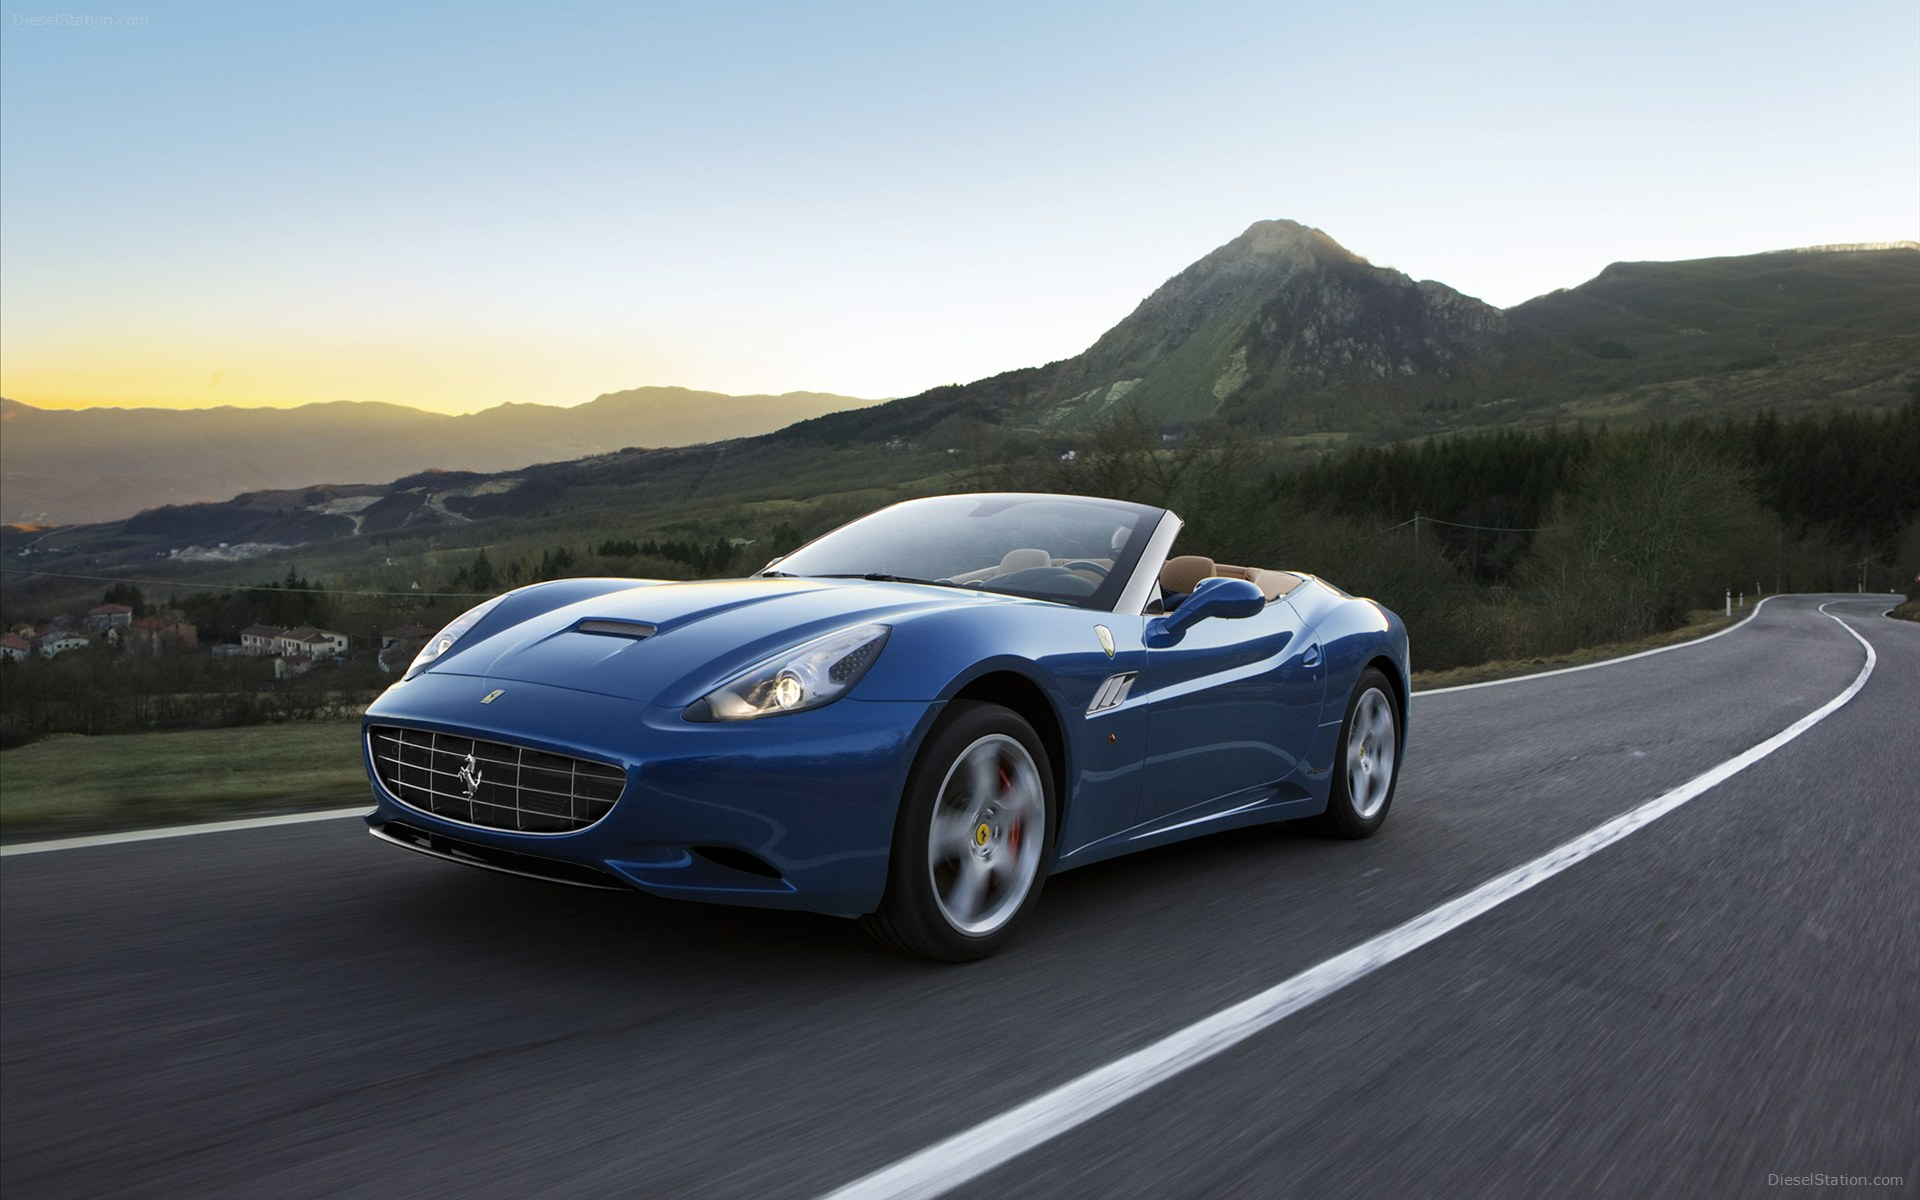 ferrari-california-wallpaper-wp5007458